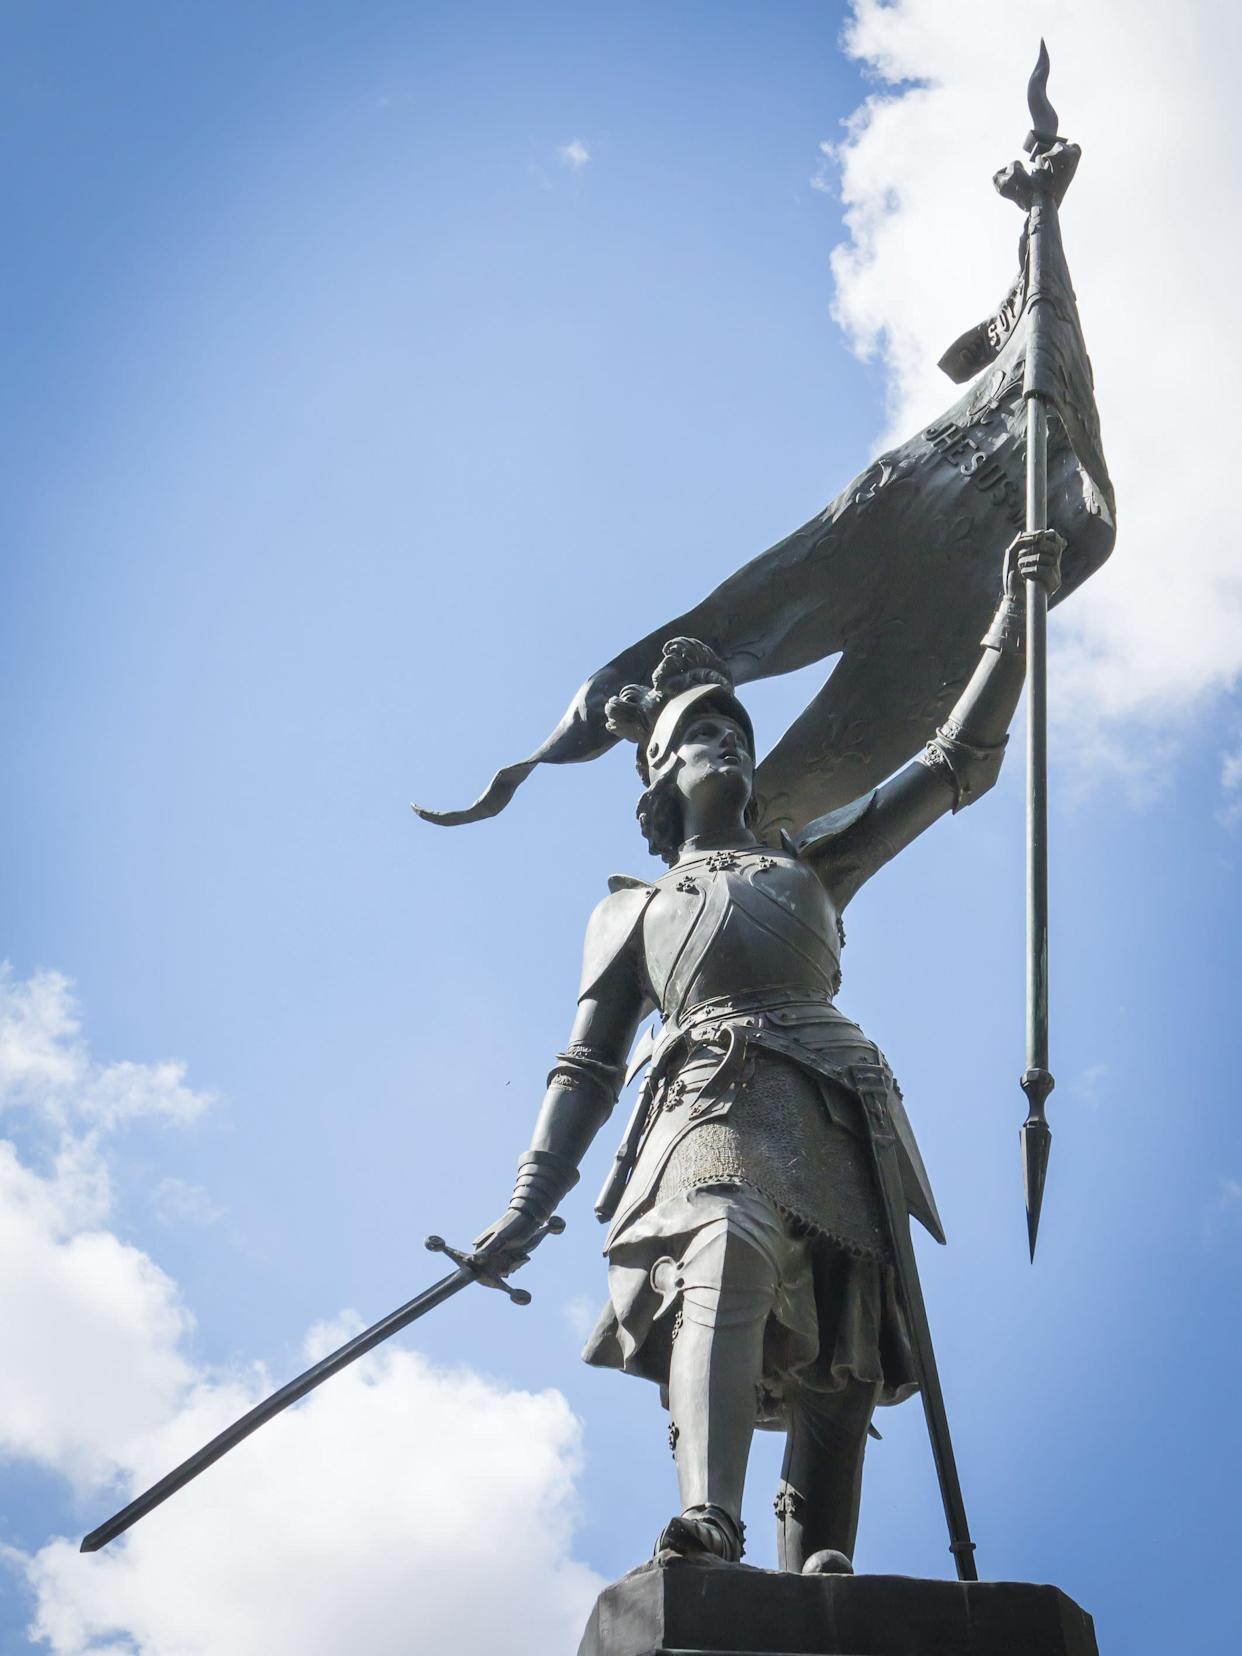 <span>Joan of Arc</span>&amp;nbsp;grew up a peasant in medieval France and reportedly started hearing the voices of saints from a young age. At the age of 18, Joan believed that God had chosen her to lead France to victory in its ongoing war with England. The precocious Joan convinced crowned prince Charles of Valois to allow her to lead a the country&amp;rsquo;s army to Orl&amp;eacute;ans, where it <span>defeated</span>&amp;nbsp;the English and their French allies, the Burgundians. She was subsequently captured by Anglo-Burgundian forces, tried for heresy and burned at the stake in 1431. She was just 19 years old when she died. The Catholic Church canonized her in 1920.